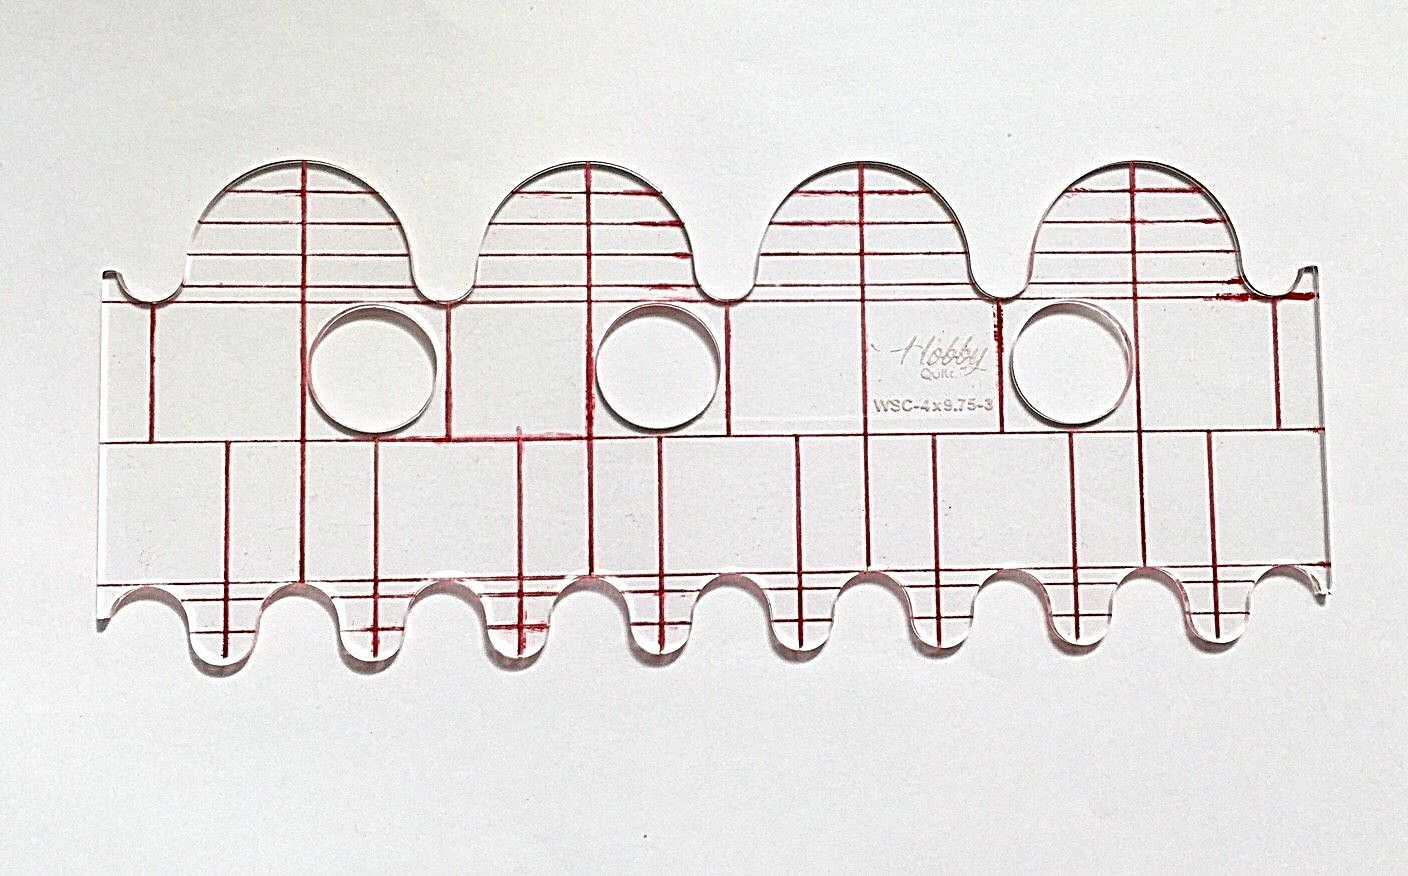 QUILTING RULER TEMPLATE Wave & Scallop WSC-4X9.75-3 (3mm) - £13.50 ...